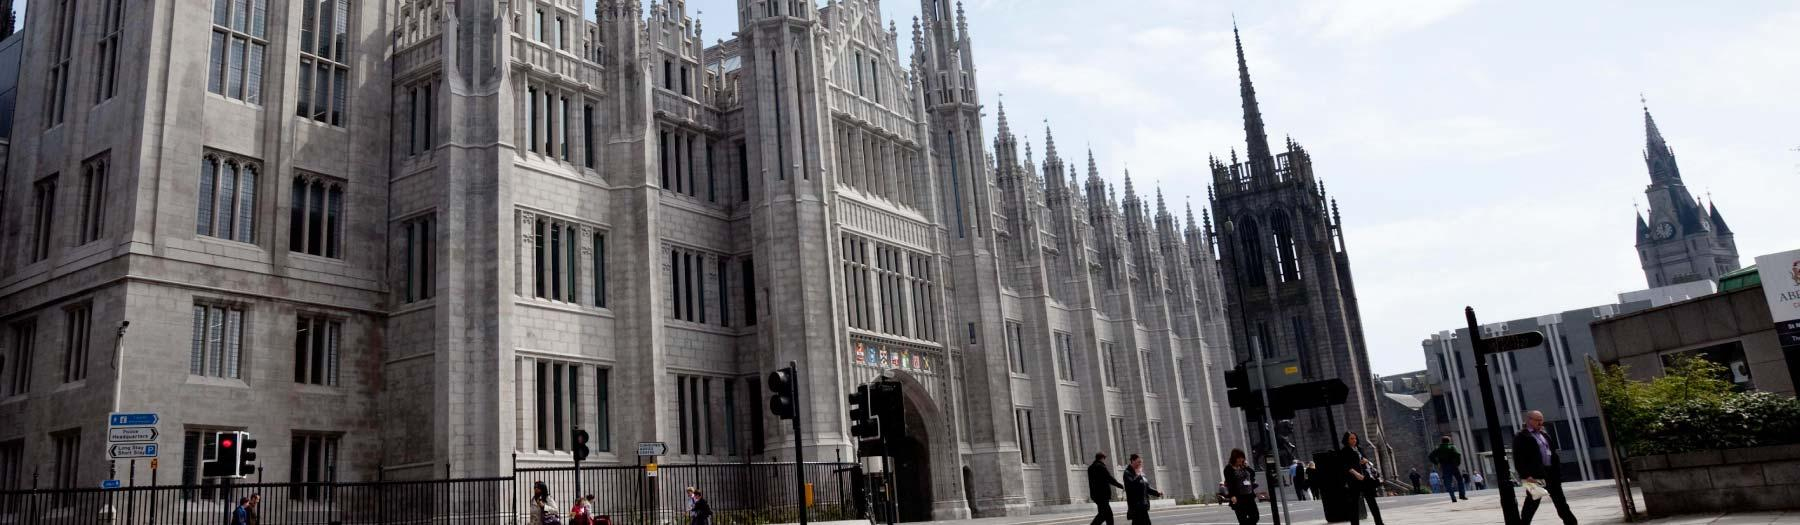 Image: Marischal College. Credit: Image used with permission from VisitScotland and Scottish Viewpoint.